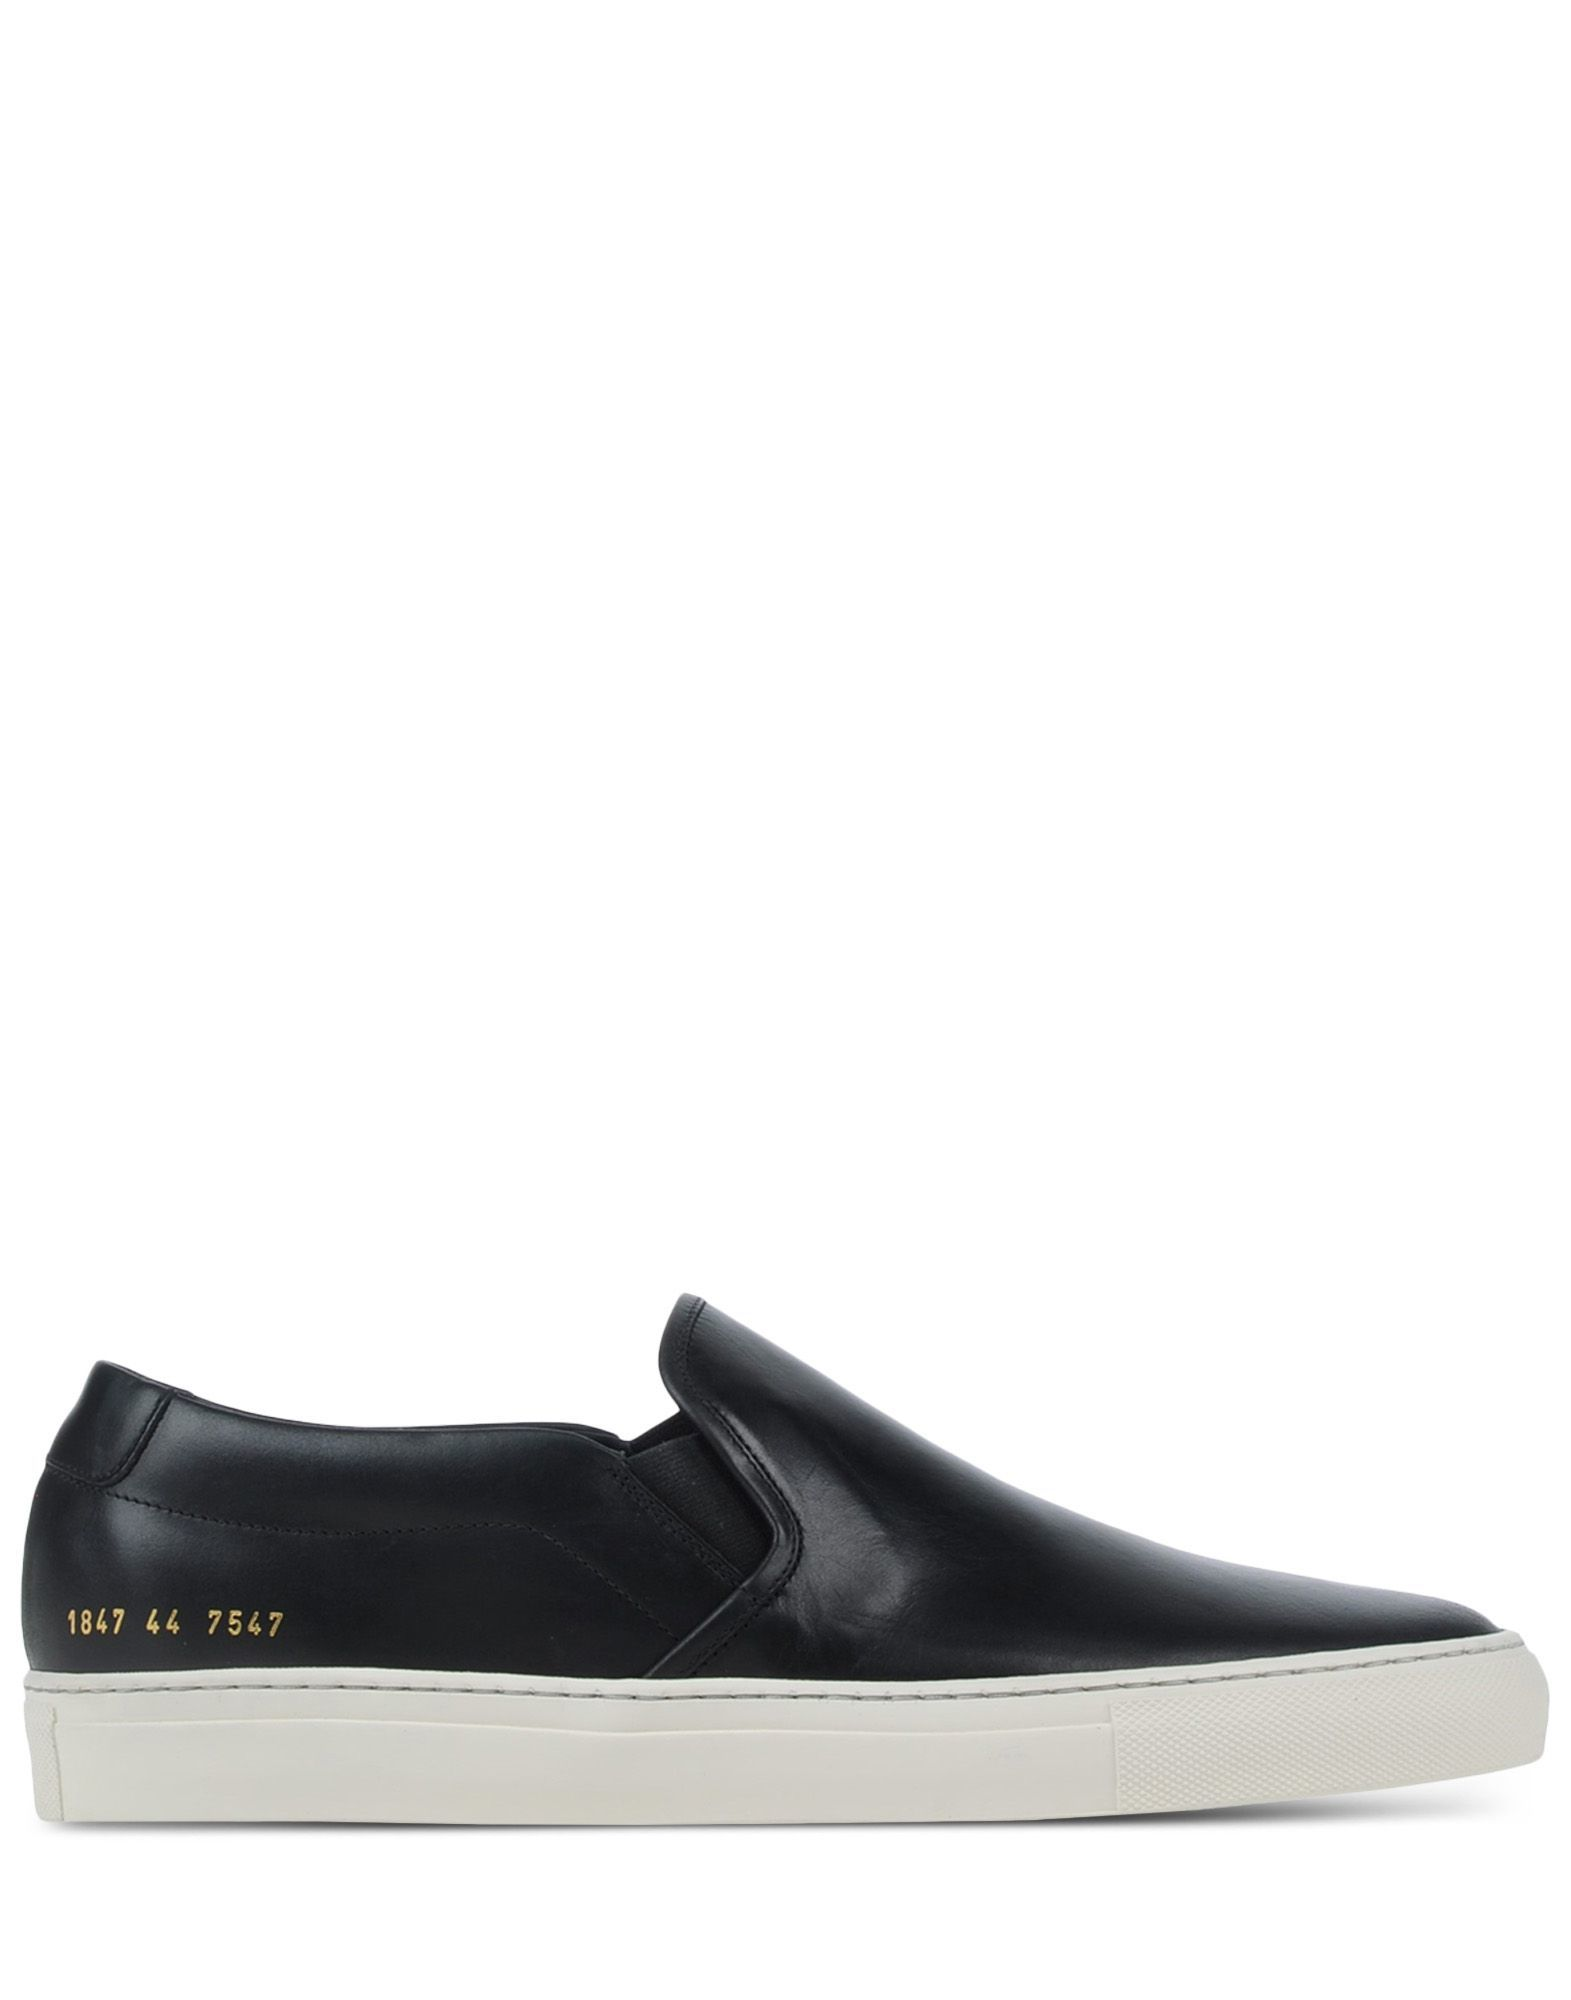 b048317480e67 Common projects Slip-on Sneakers in Black for Men